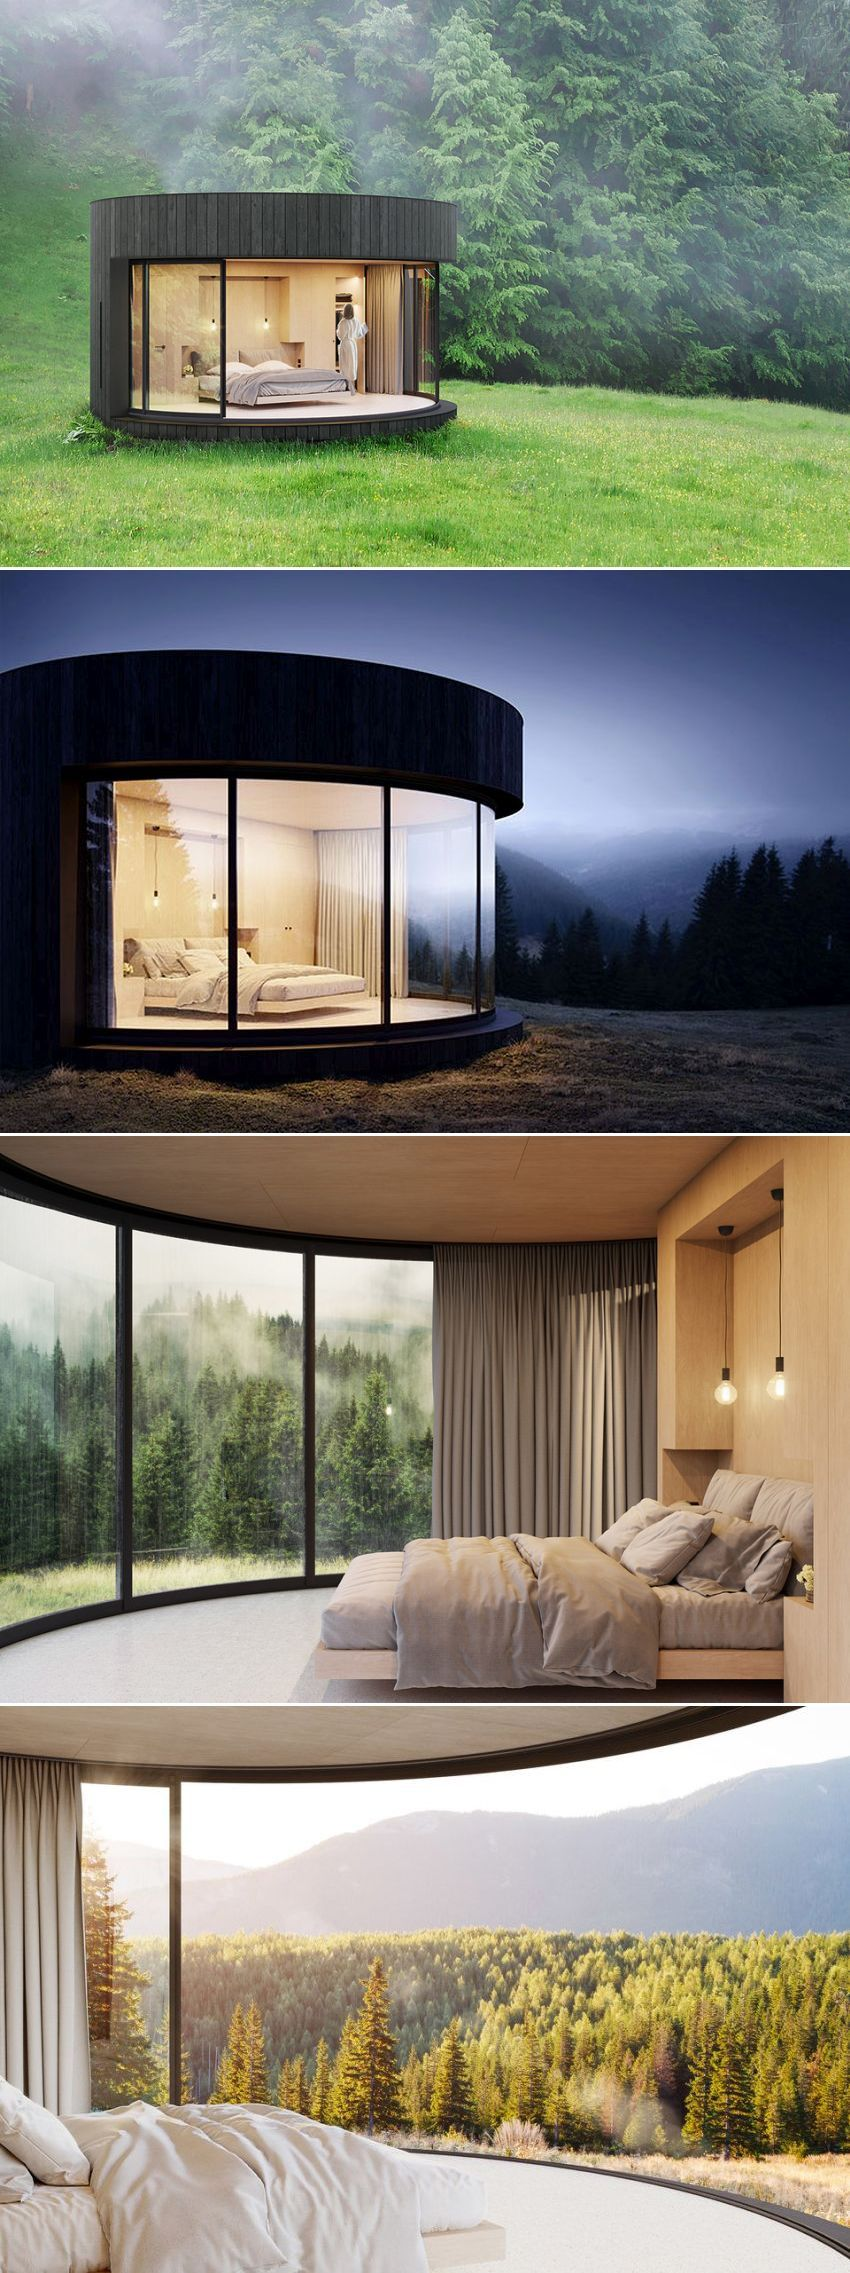 LumiPod Prefab Cabin With Curved Glass is Modern Nature Retreat